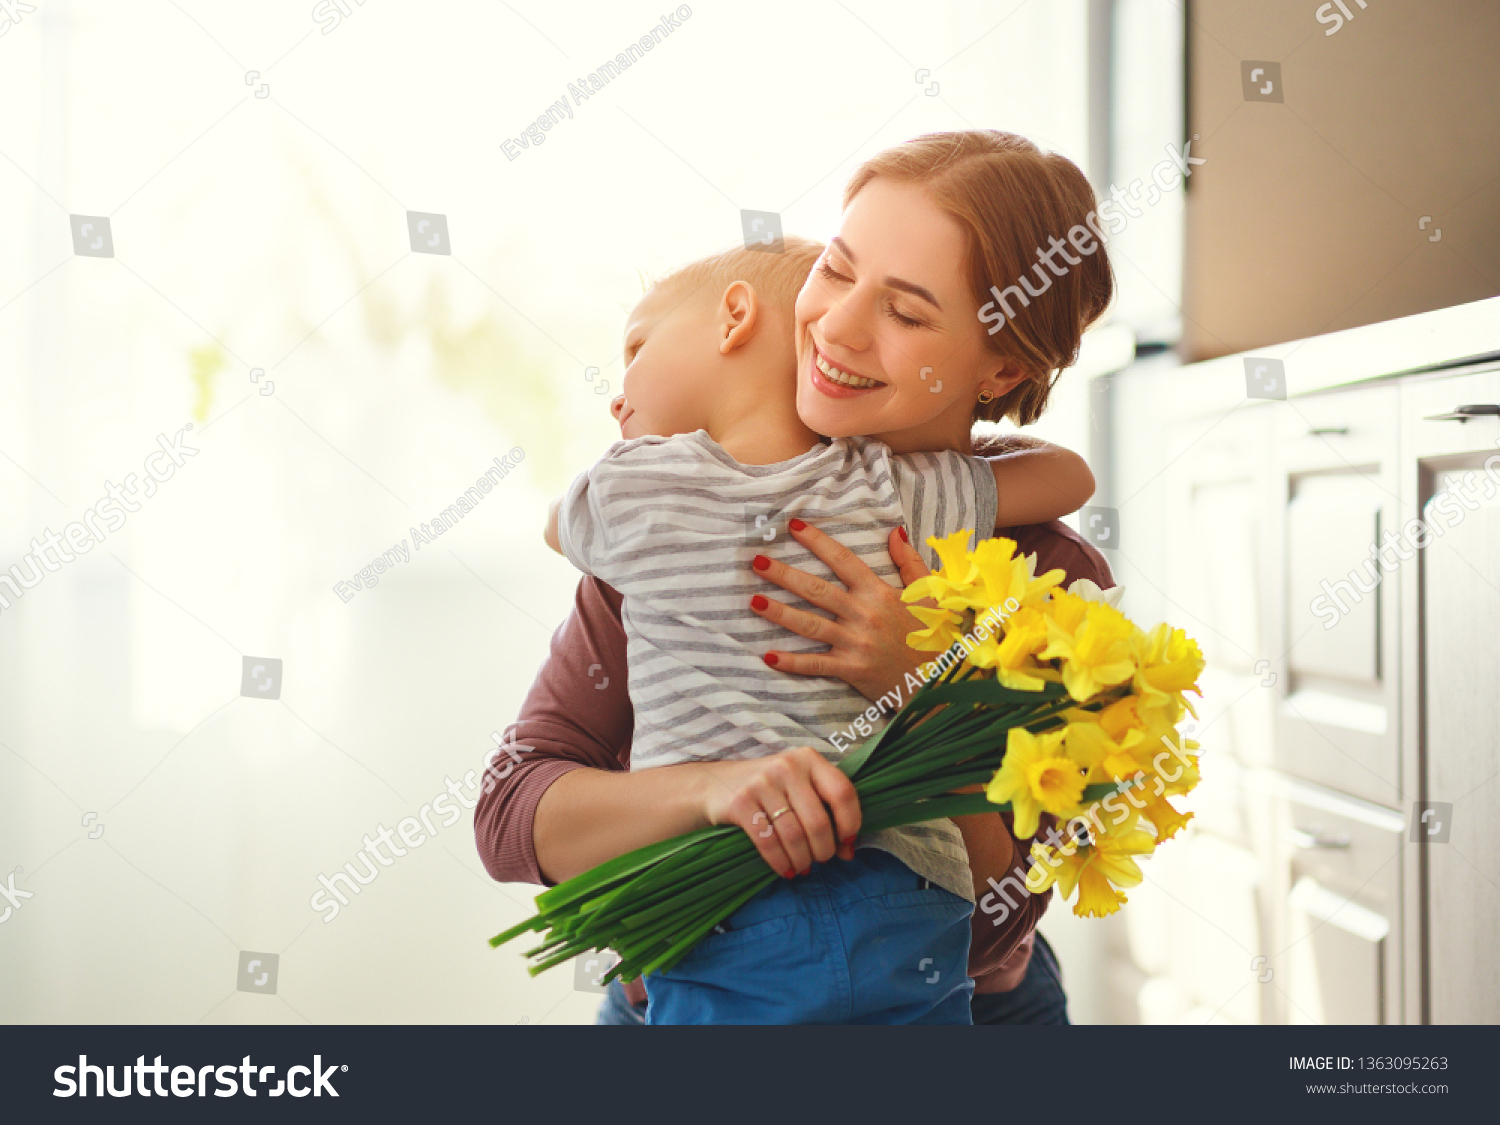 happy mother's day! child son congratulates mother on holiday and gives flowers